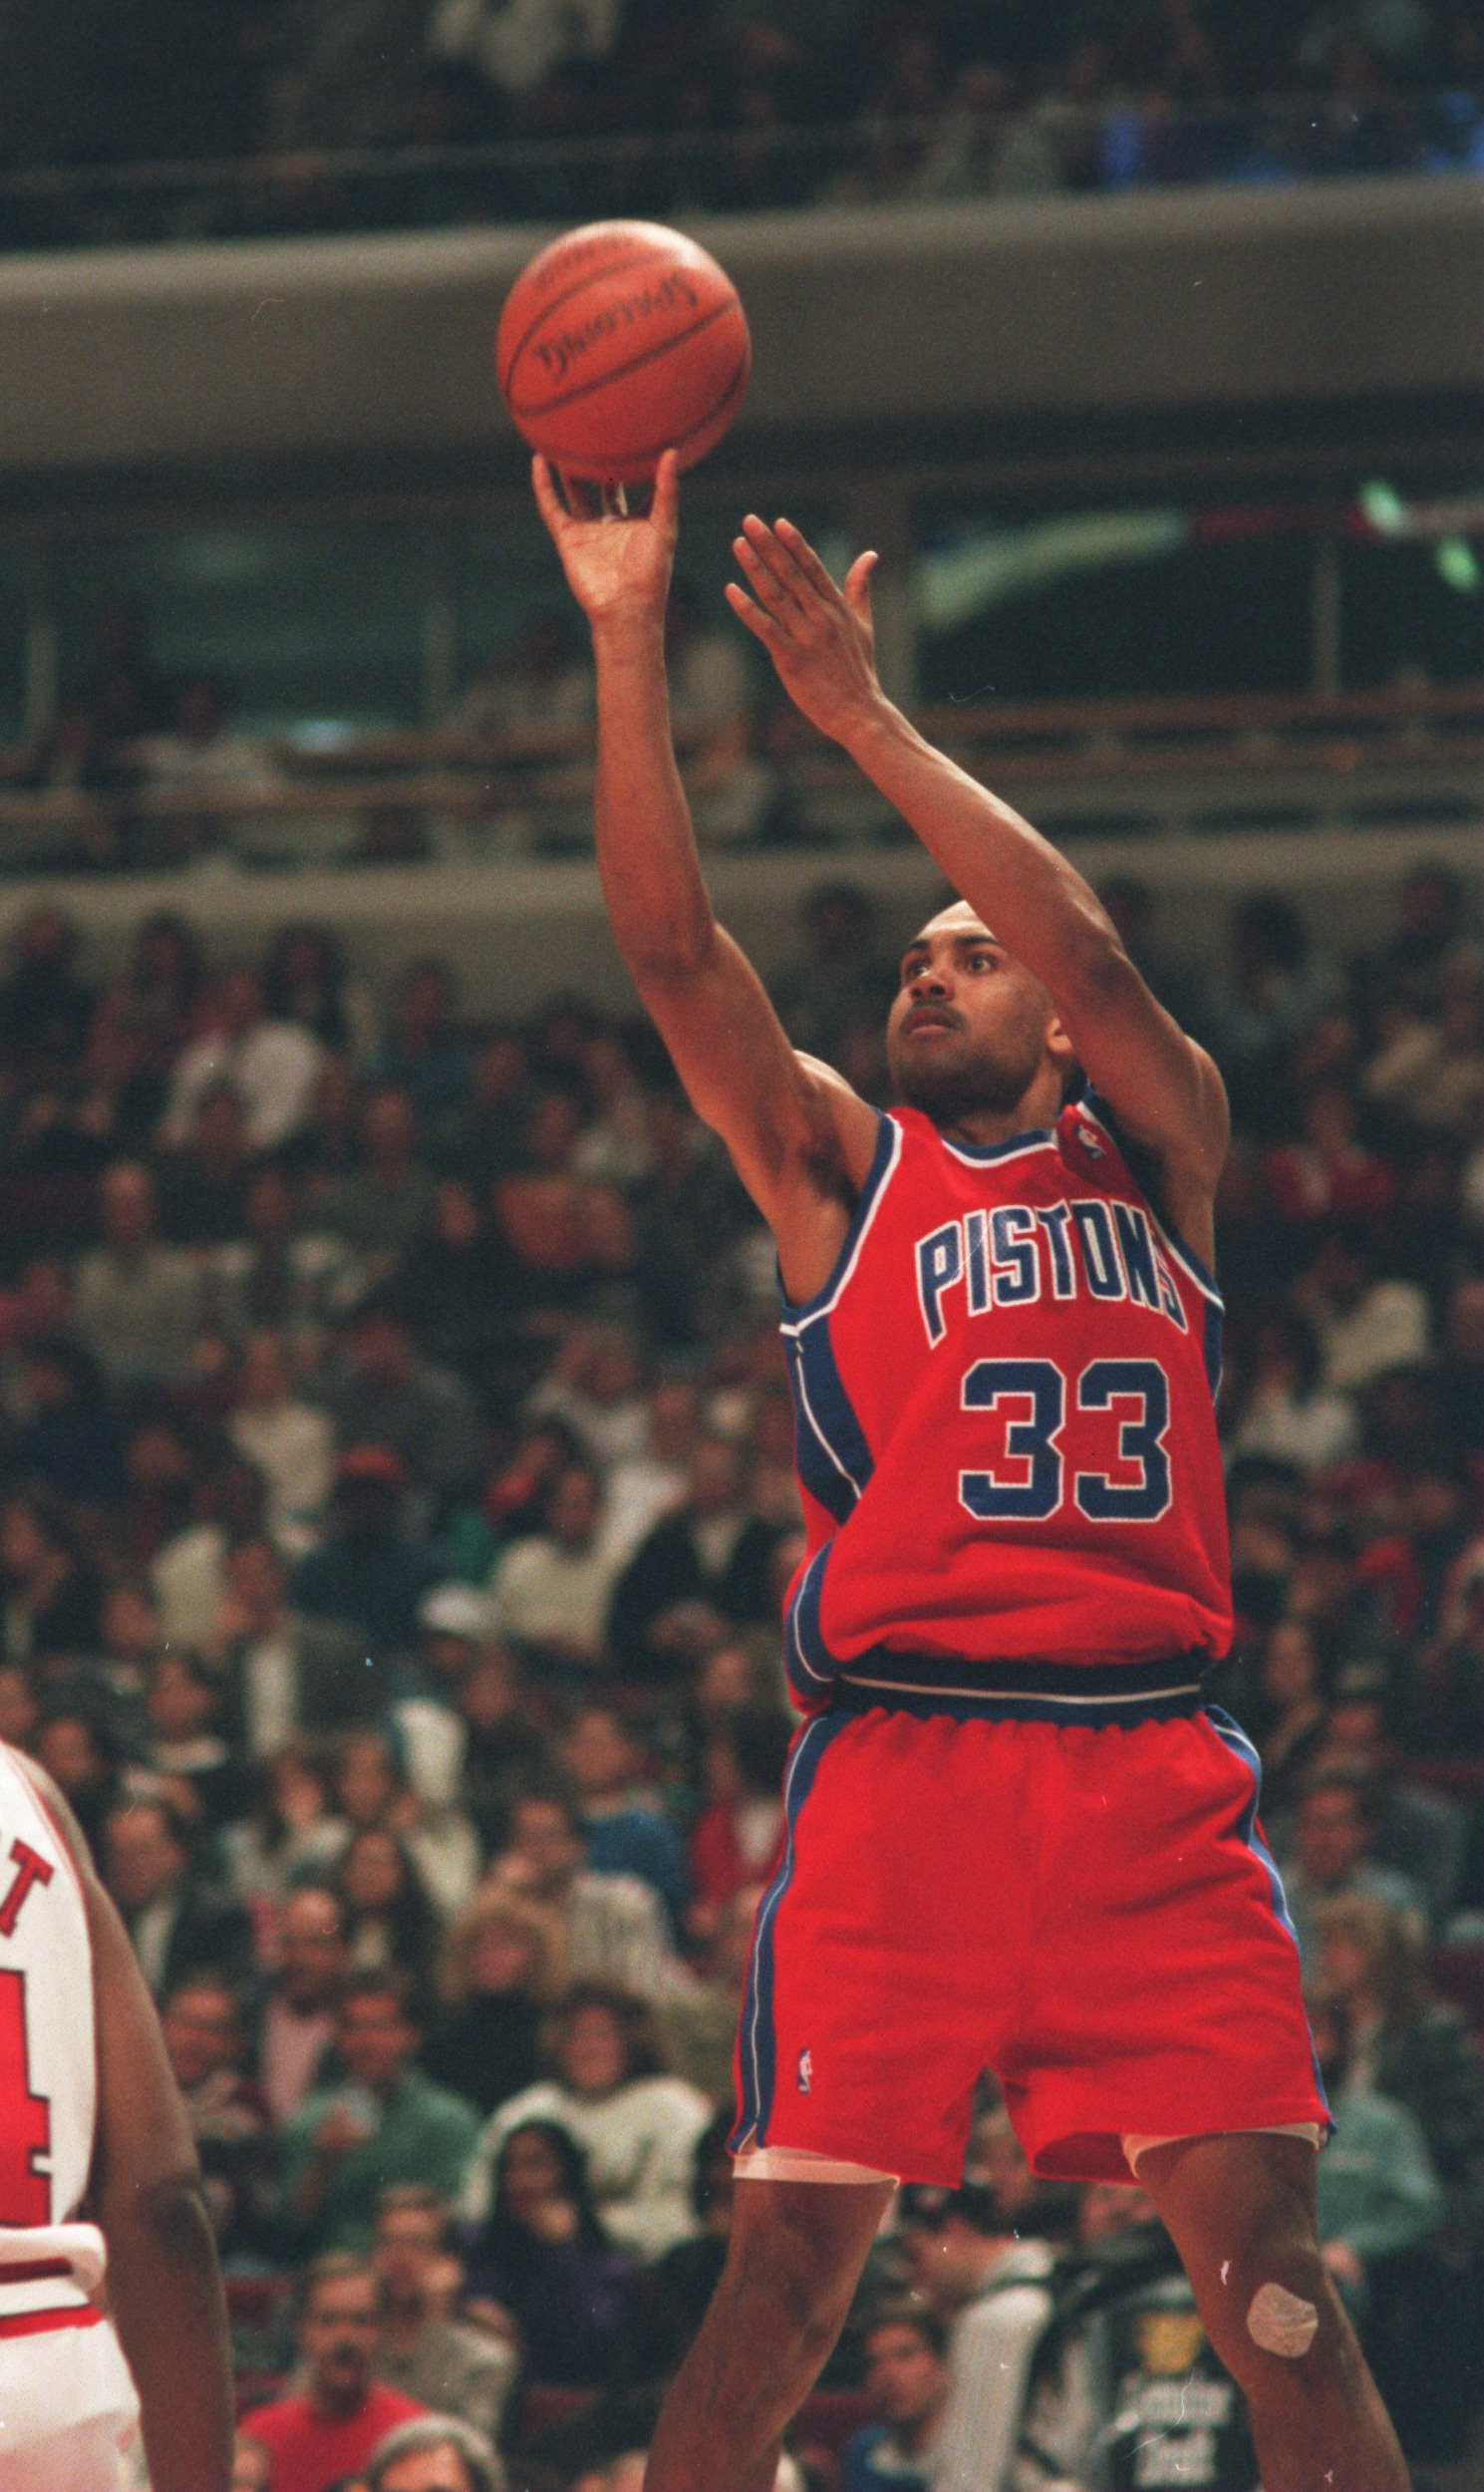 17 FEB 1995:  GRANT HILL OF THE DETROIT PISTONS PUTS UP A JUMP SHOT DURING THEIR GAME AGAINST THE CHICAGO BULLS AT THE UNITED CENTER IN CHICAGO, ILLINOIS. Mandatory Credit: ALLSPORT/ALLSPORT